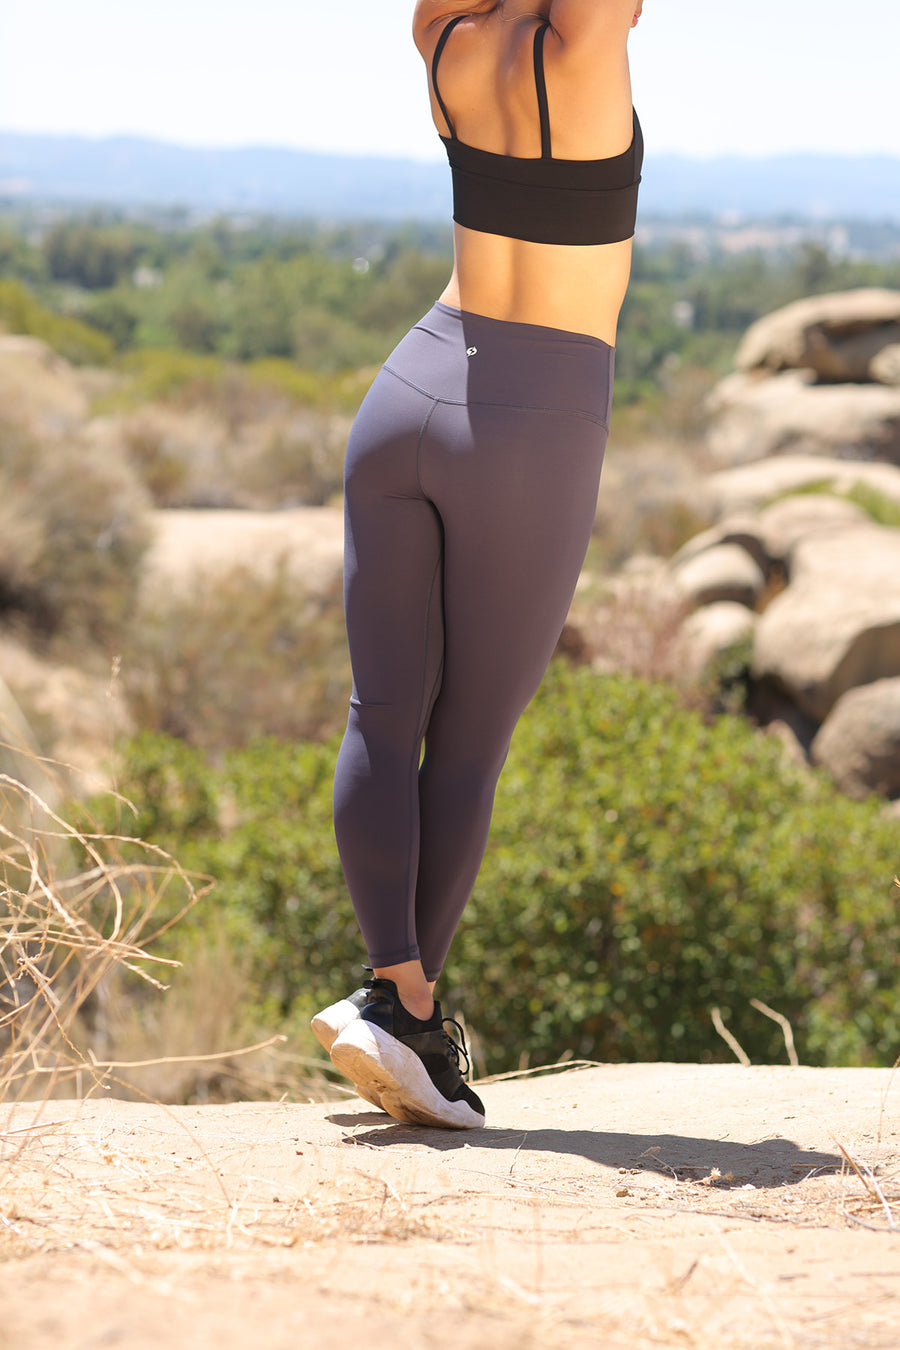 Alpine Legging (anti-camel toe) - Granite